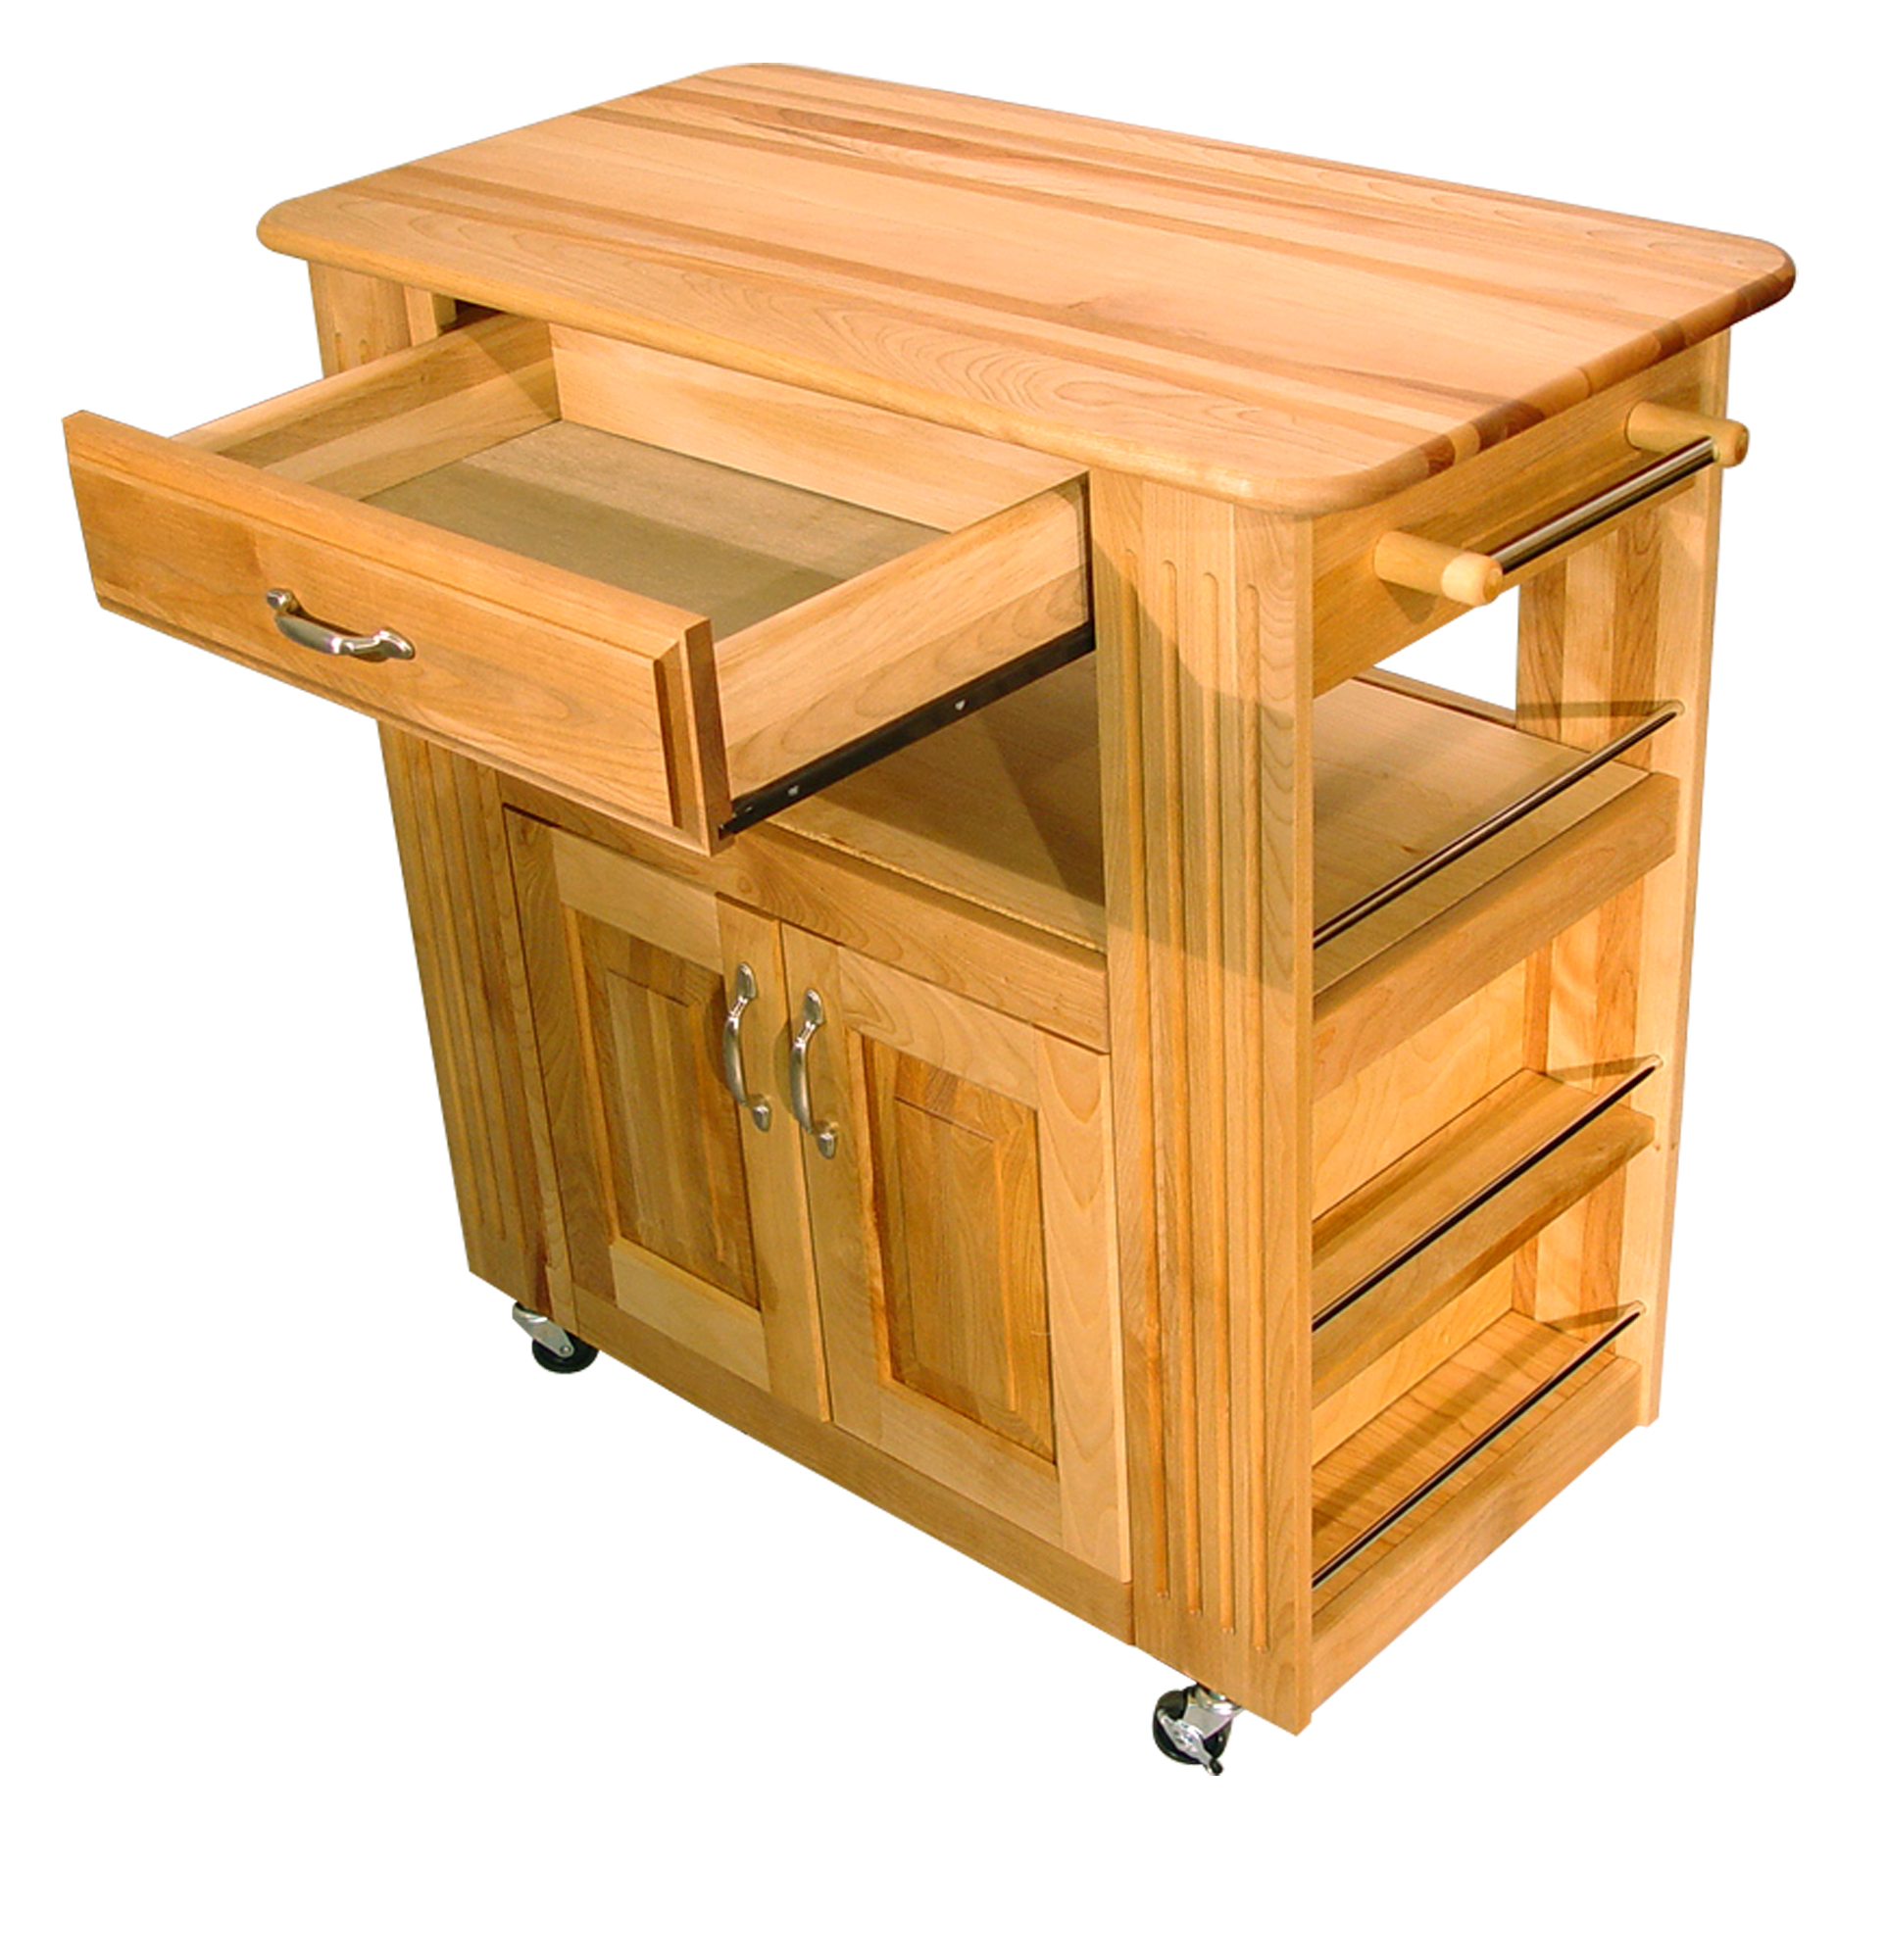 Catskill Heart-of-the-Kitchen Island - Butcher Block Top 34